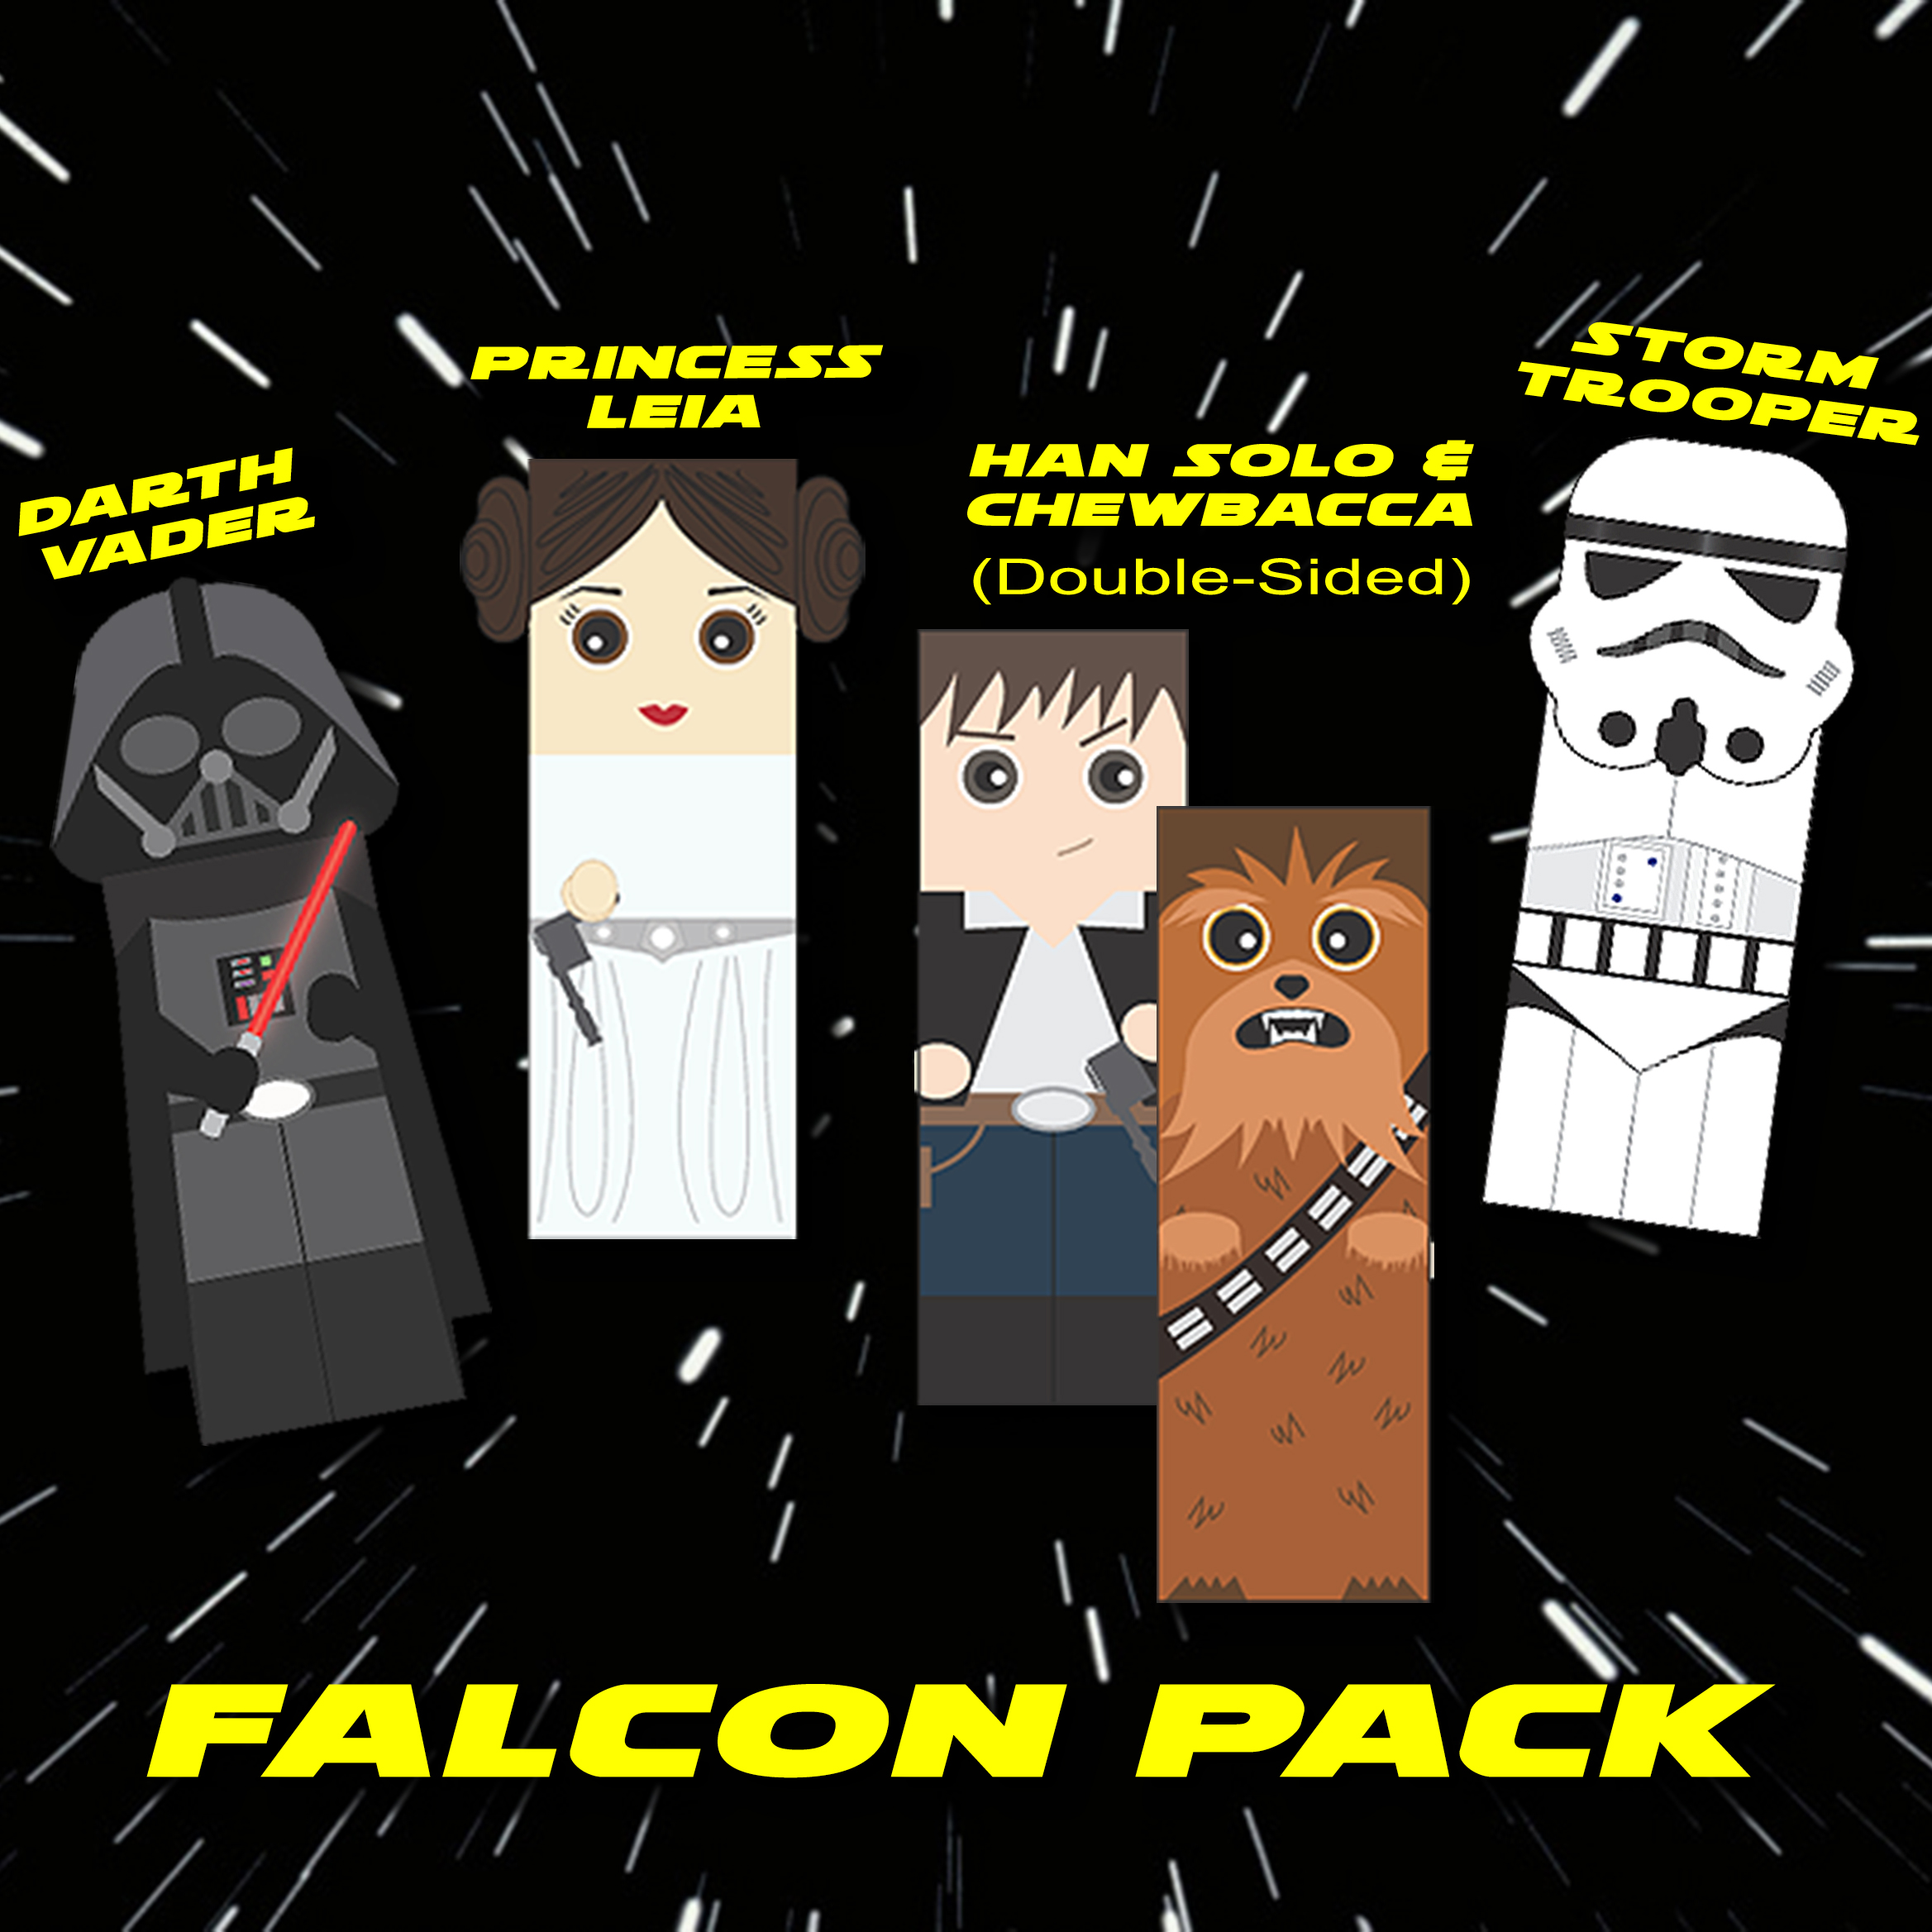 Star Wars Bookmarks_Falcon Pack